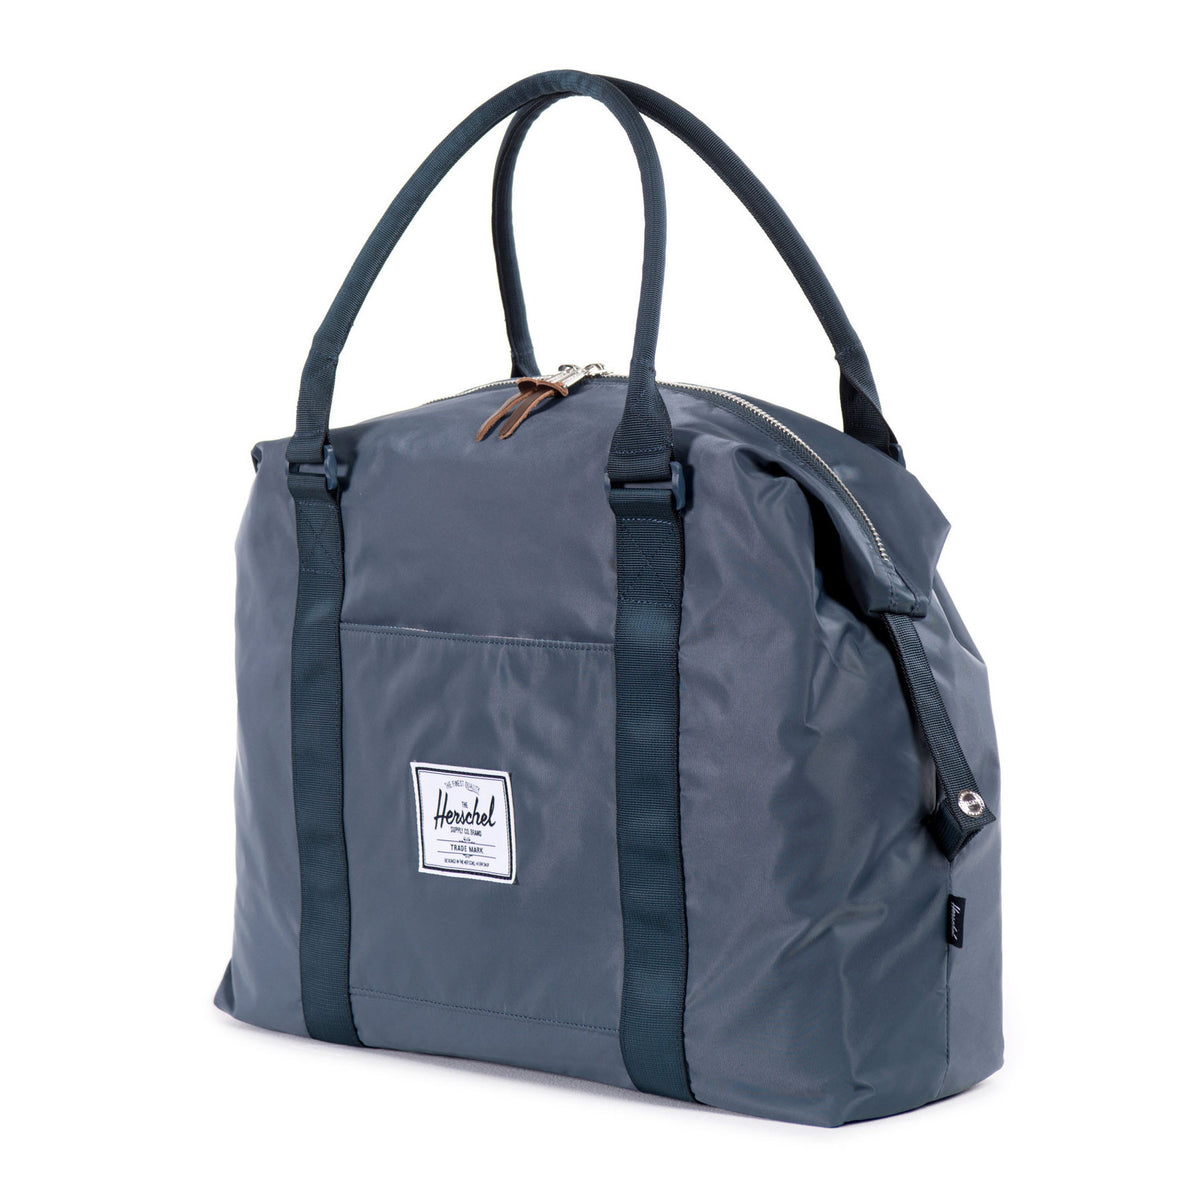 Herschel Supply Co.: Strand Nylon Duffel Bag - Navy